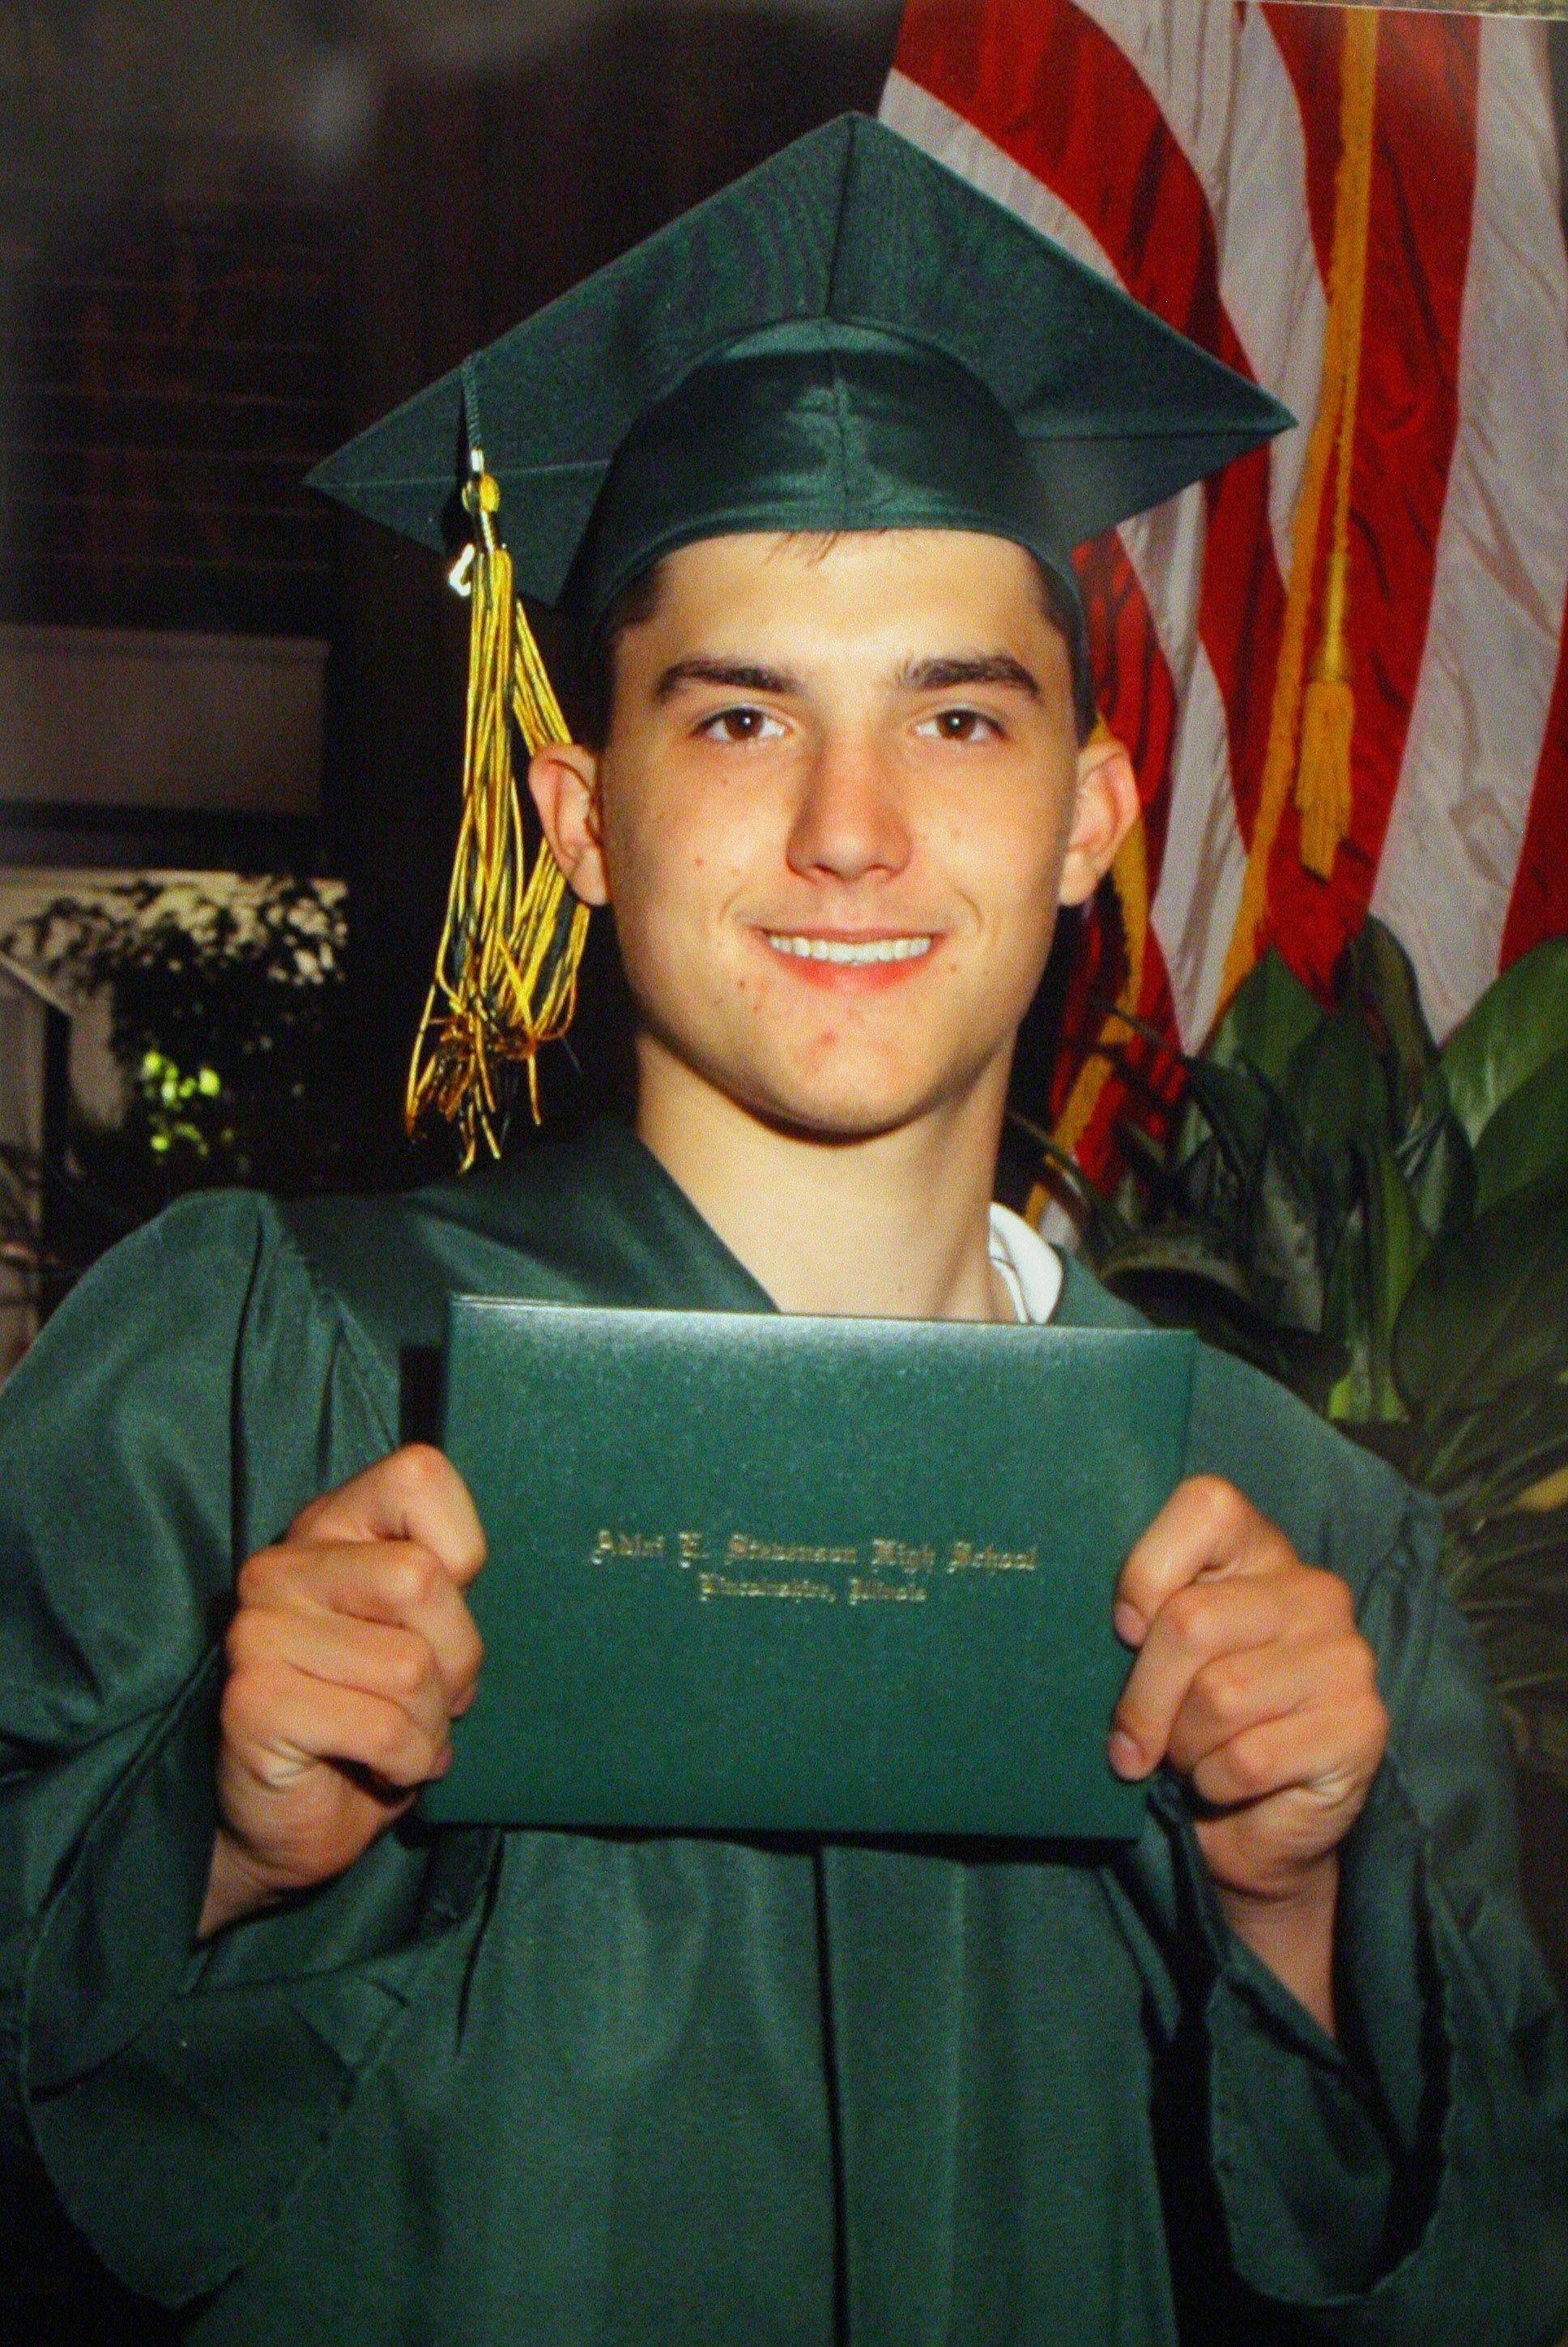 Nick Beinlich of Lincolnshire poses at his Stevenson High School graduation ceremony. In 2007, at age 18, he died of a heroin overdose.